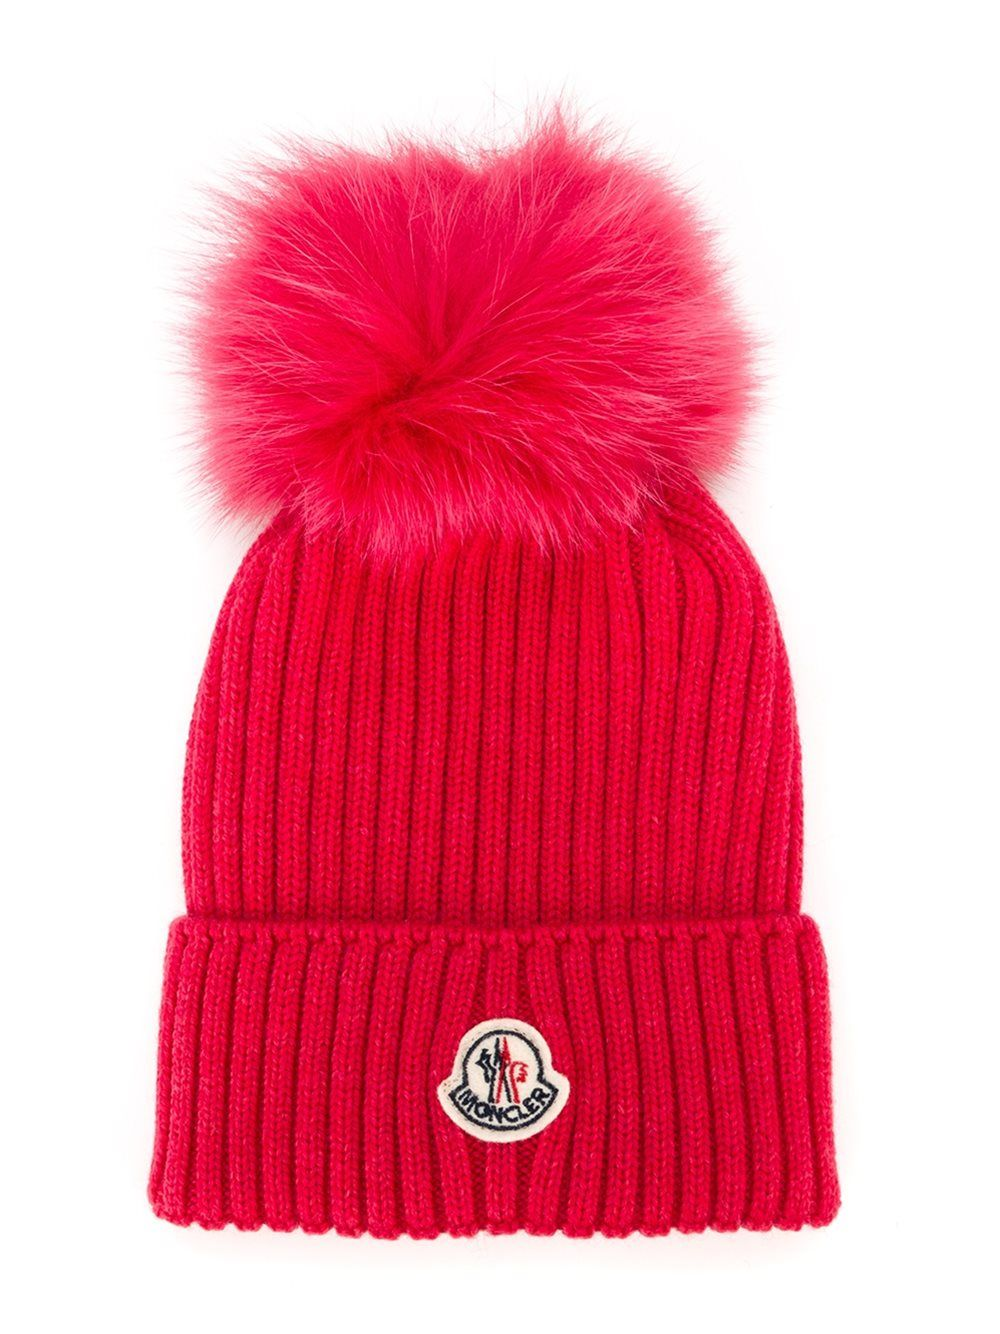 444a82c3e moncler  kids  beanie  fur  red  pompom  hats  new www.jofre.eu ...